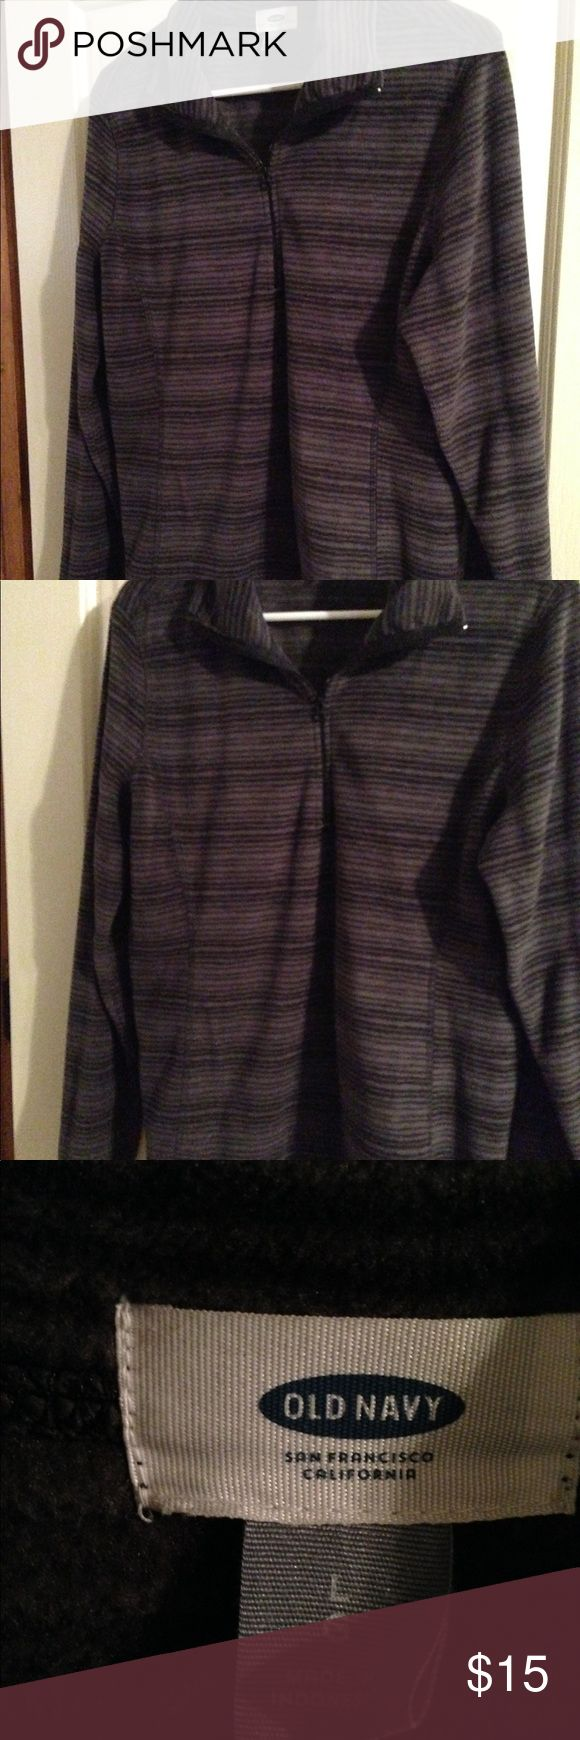 Gap Pull Over Sweat Shirt Size L Gap Pull Over Sweat Shirt Size L Ready for the cold!!!! Old Navy Tops Sweatshirts & Hoodies